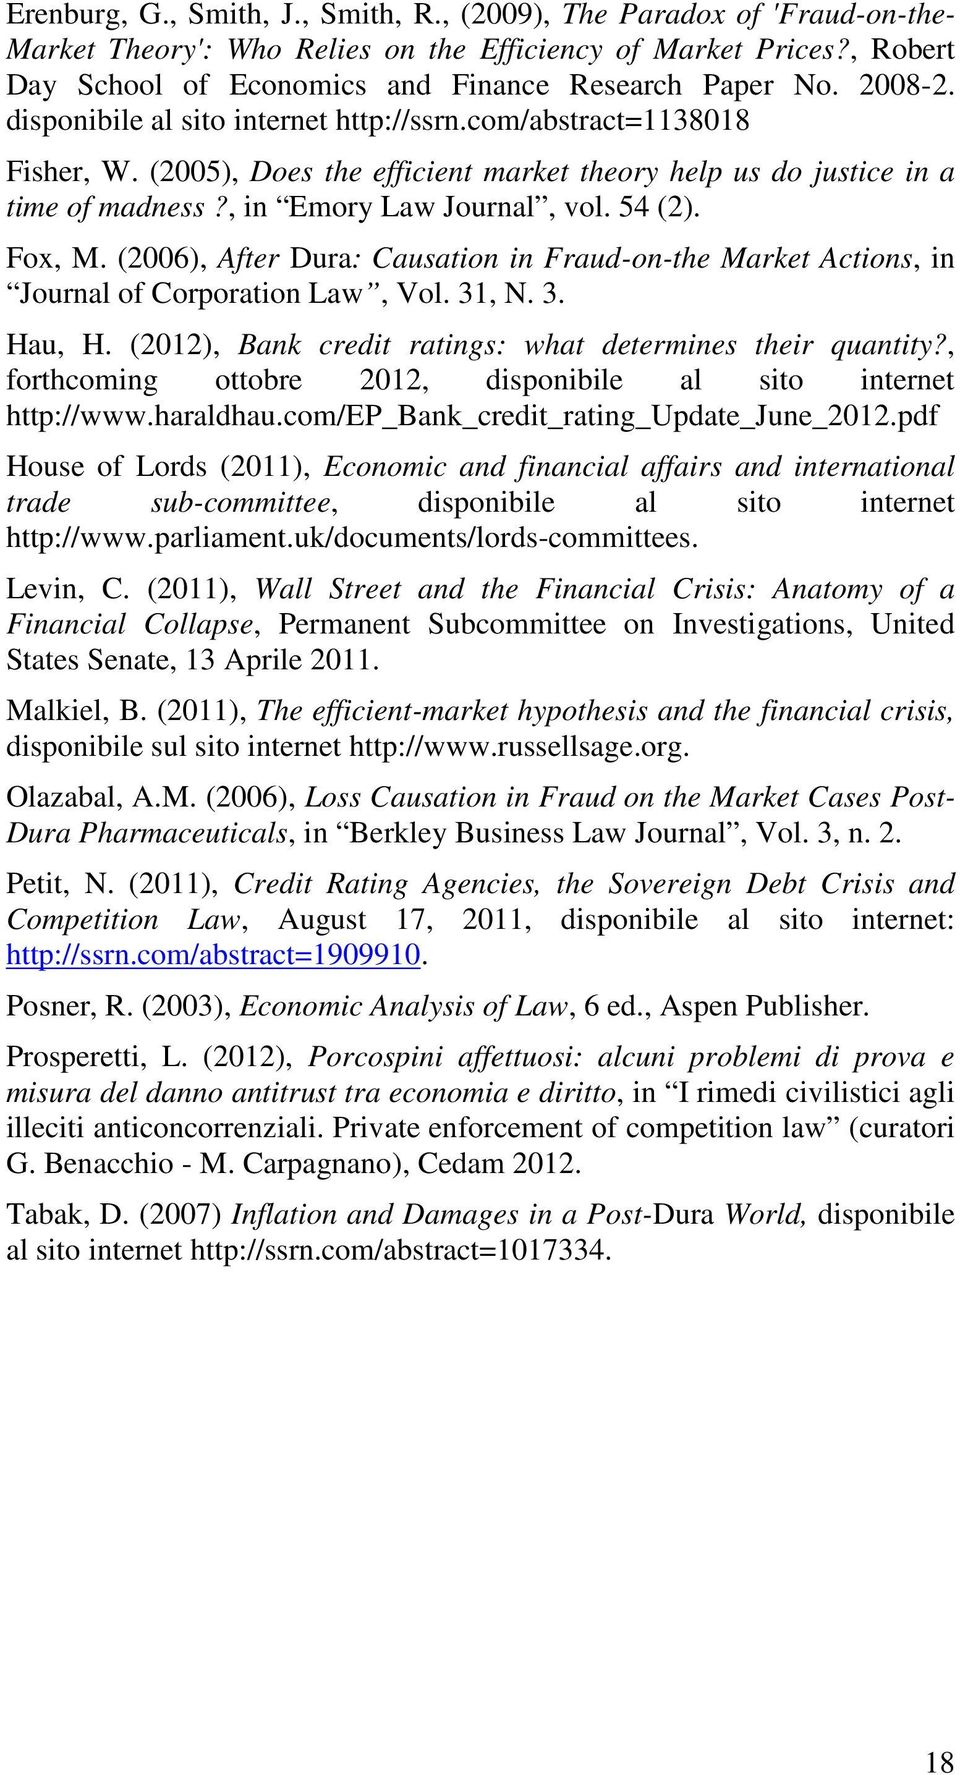 Fox, M. (2006), After Dura: Causation in Fraud-on-the Market Actions, in Journal of Corporation Law, Vol. 31, N. 3. Hau, H. (2012), Bank credit ratings: what determines their quantity?